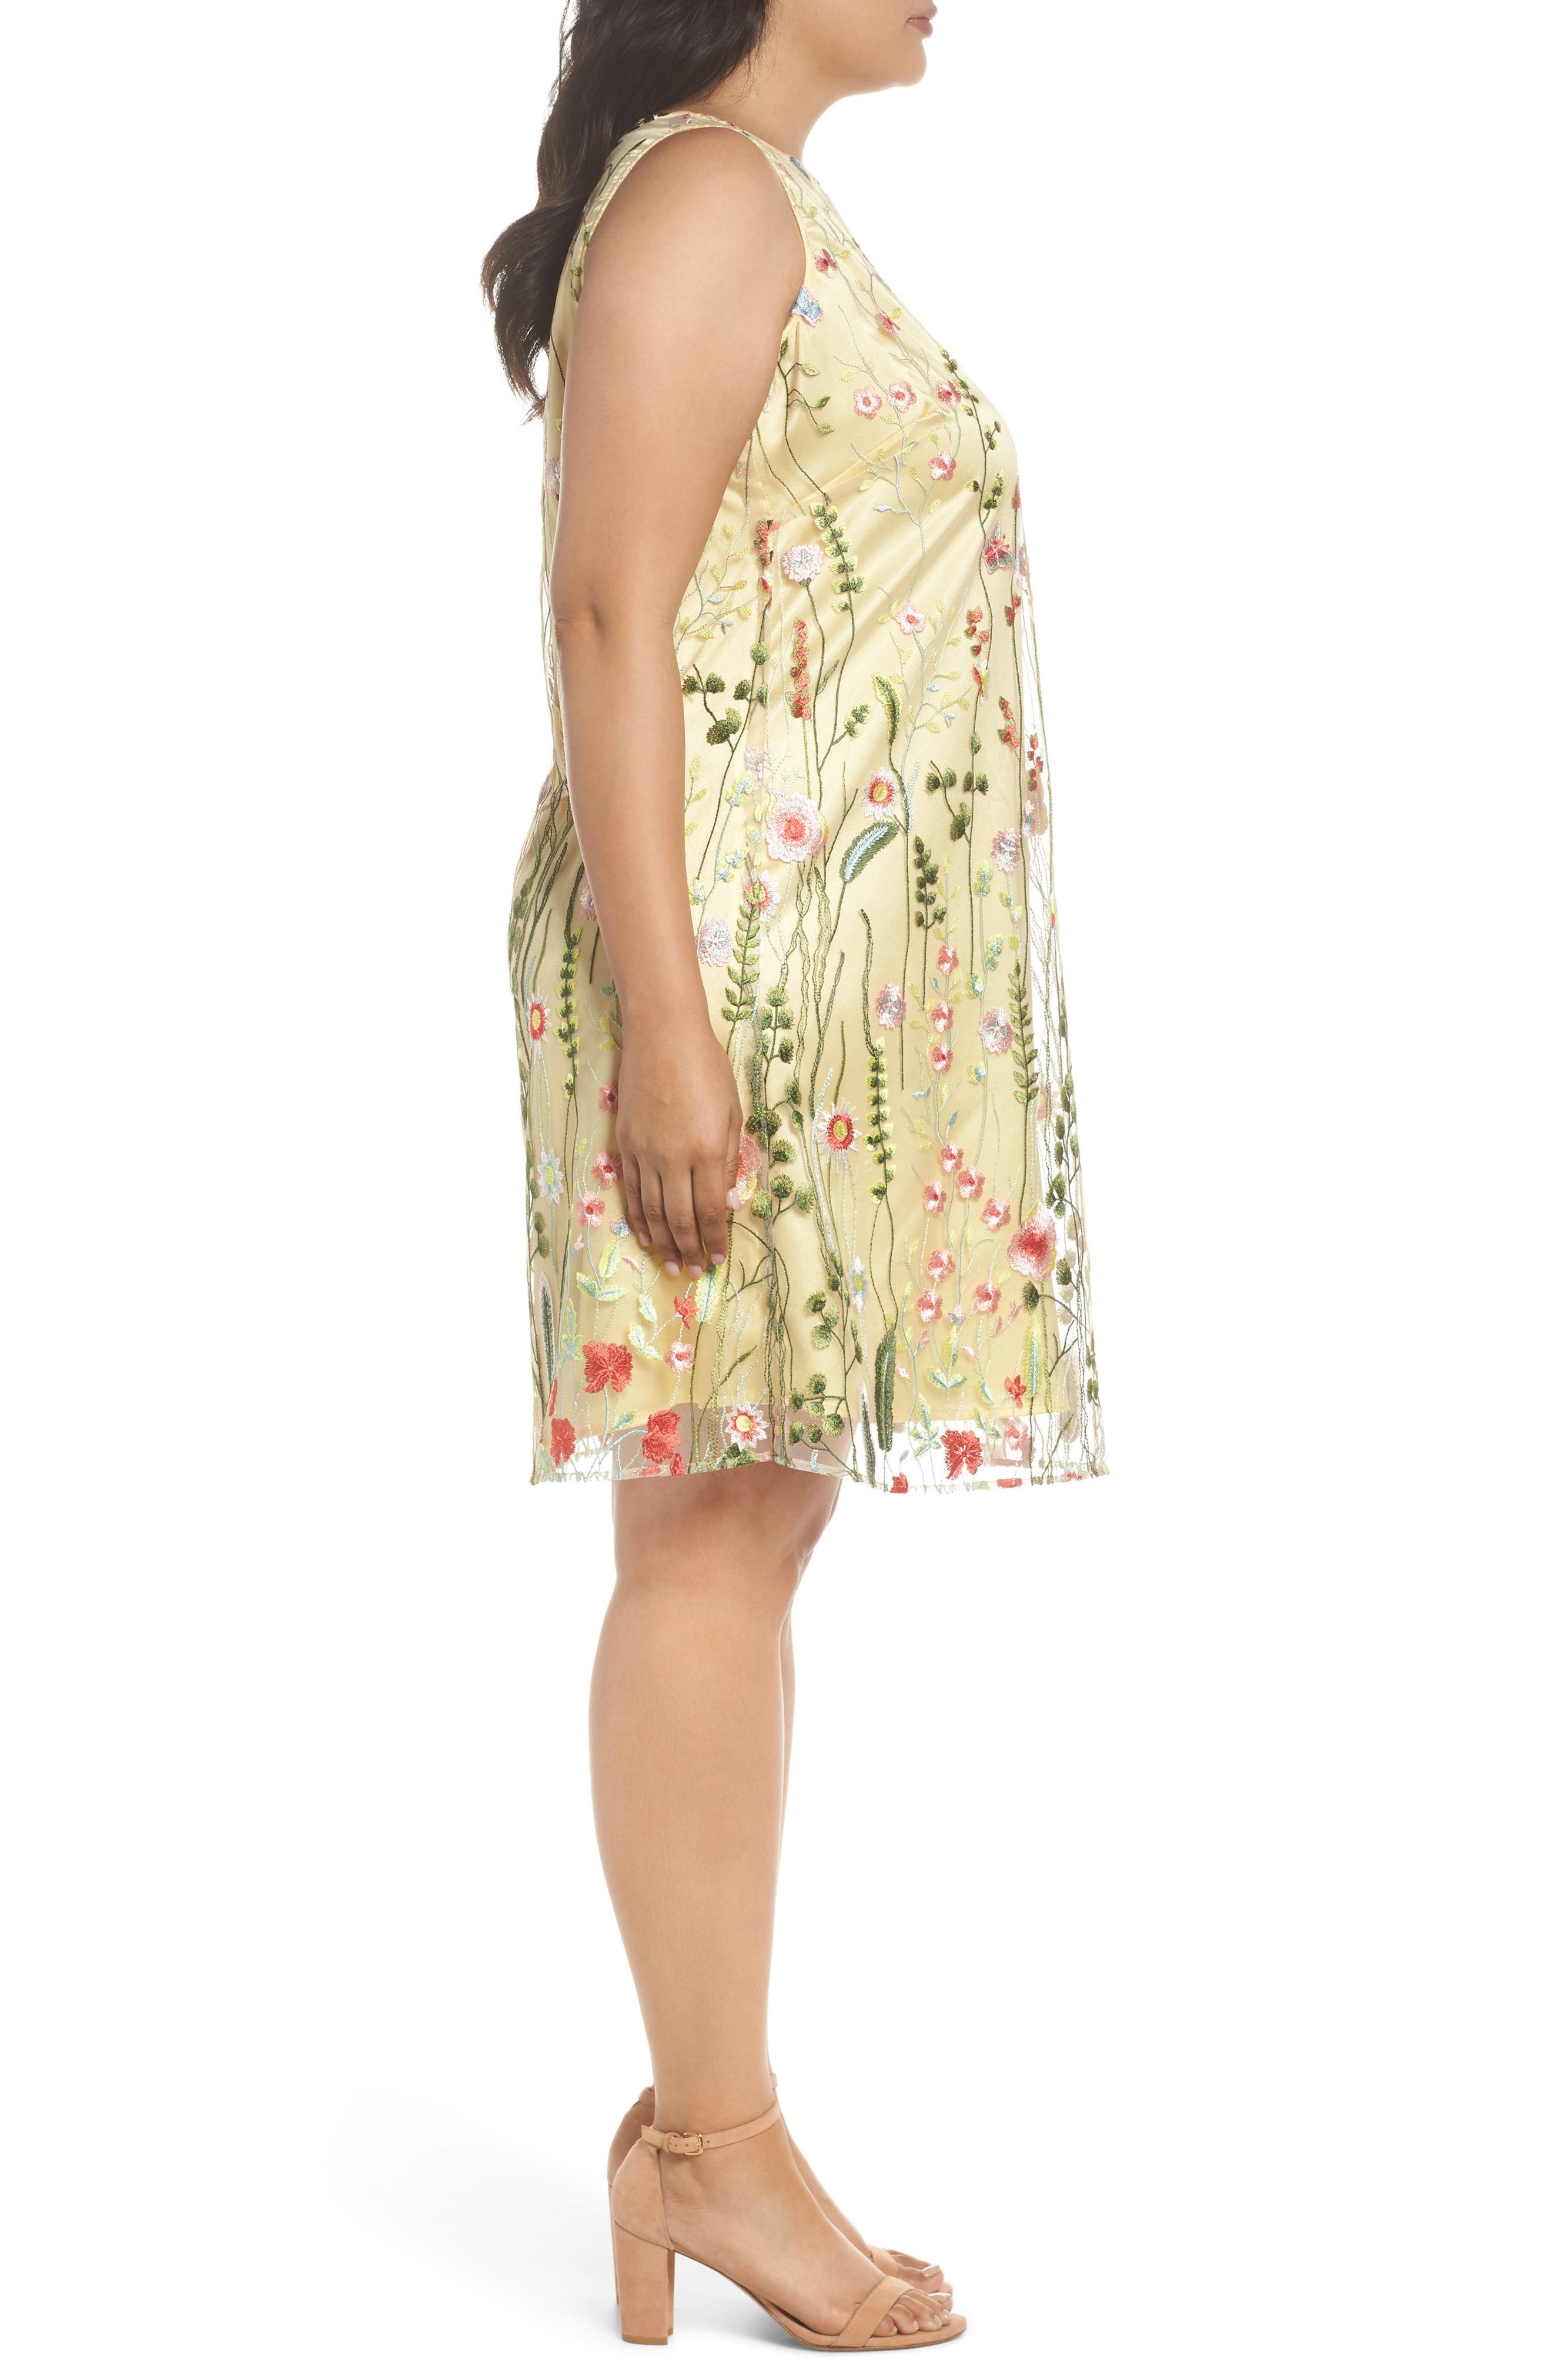 Floral Embroidered Shift Dress,                             Alternate thumbnail 3, color,                             Gold/ Blush/ Green